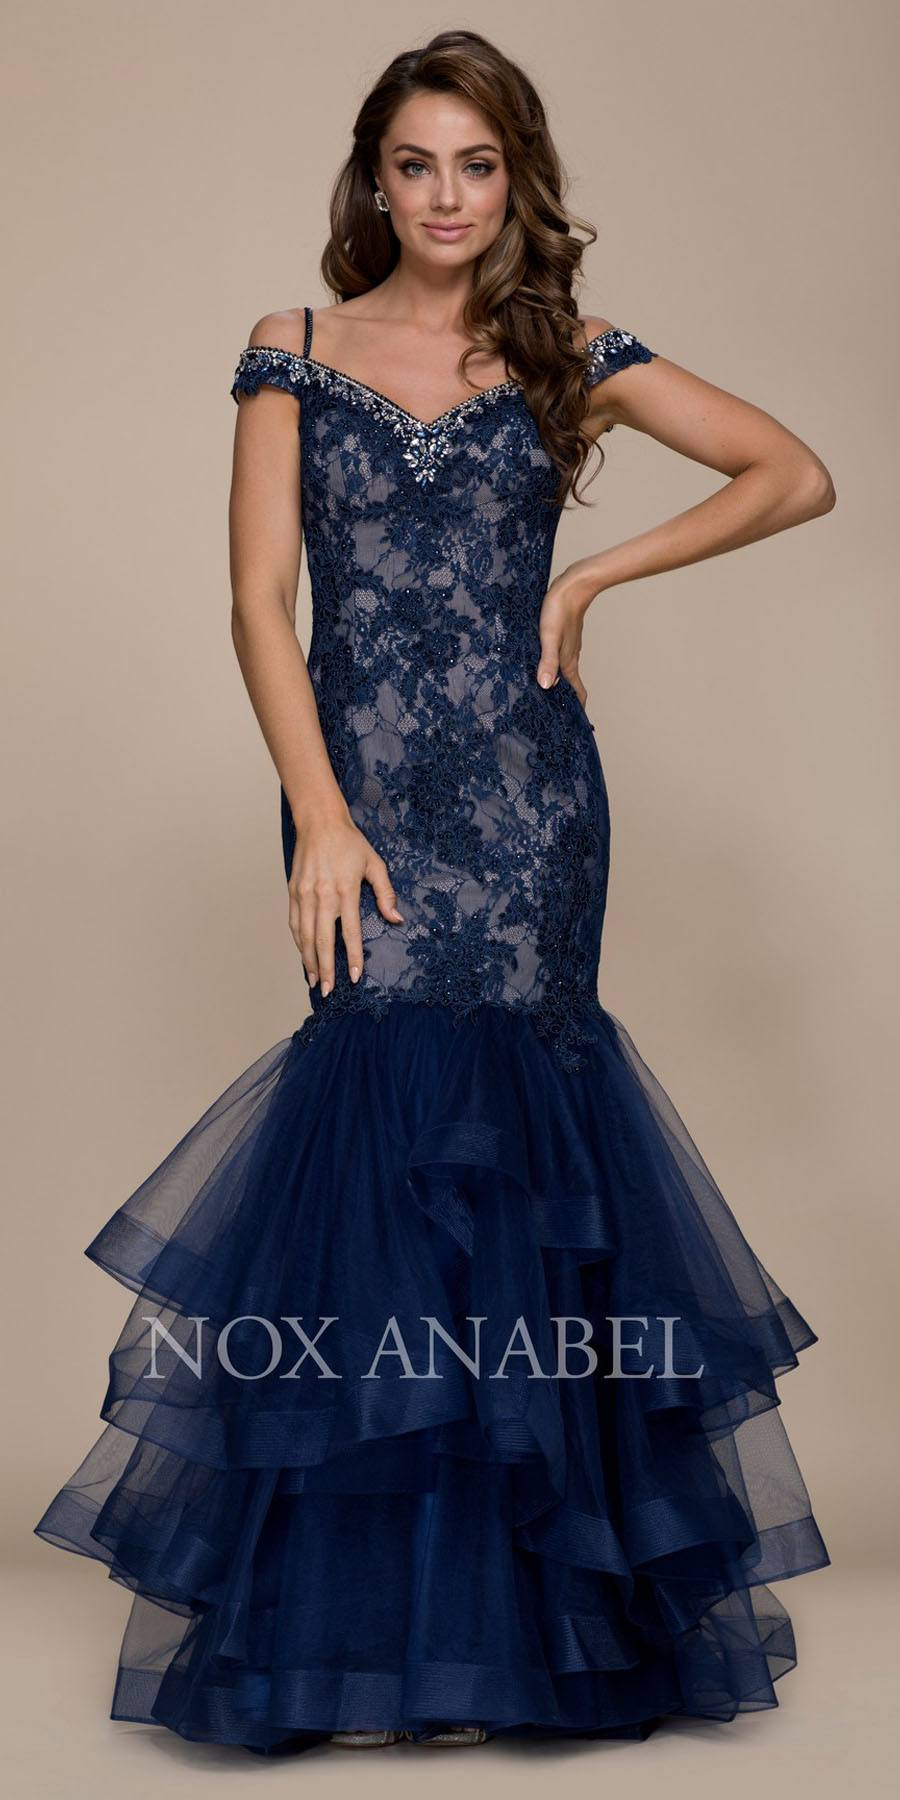 6f1a78dca0 Cold Shoulder Tiered Mermaid Long Prom Dress Navy Blue. Tap to expand